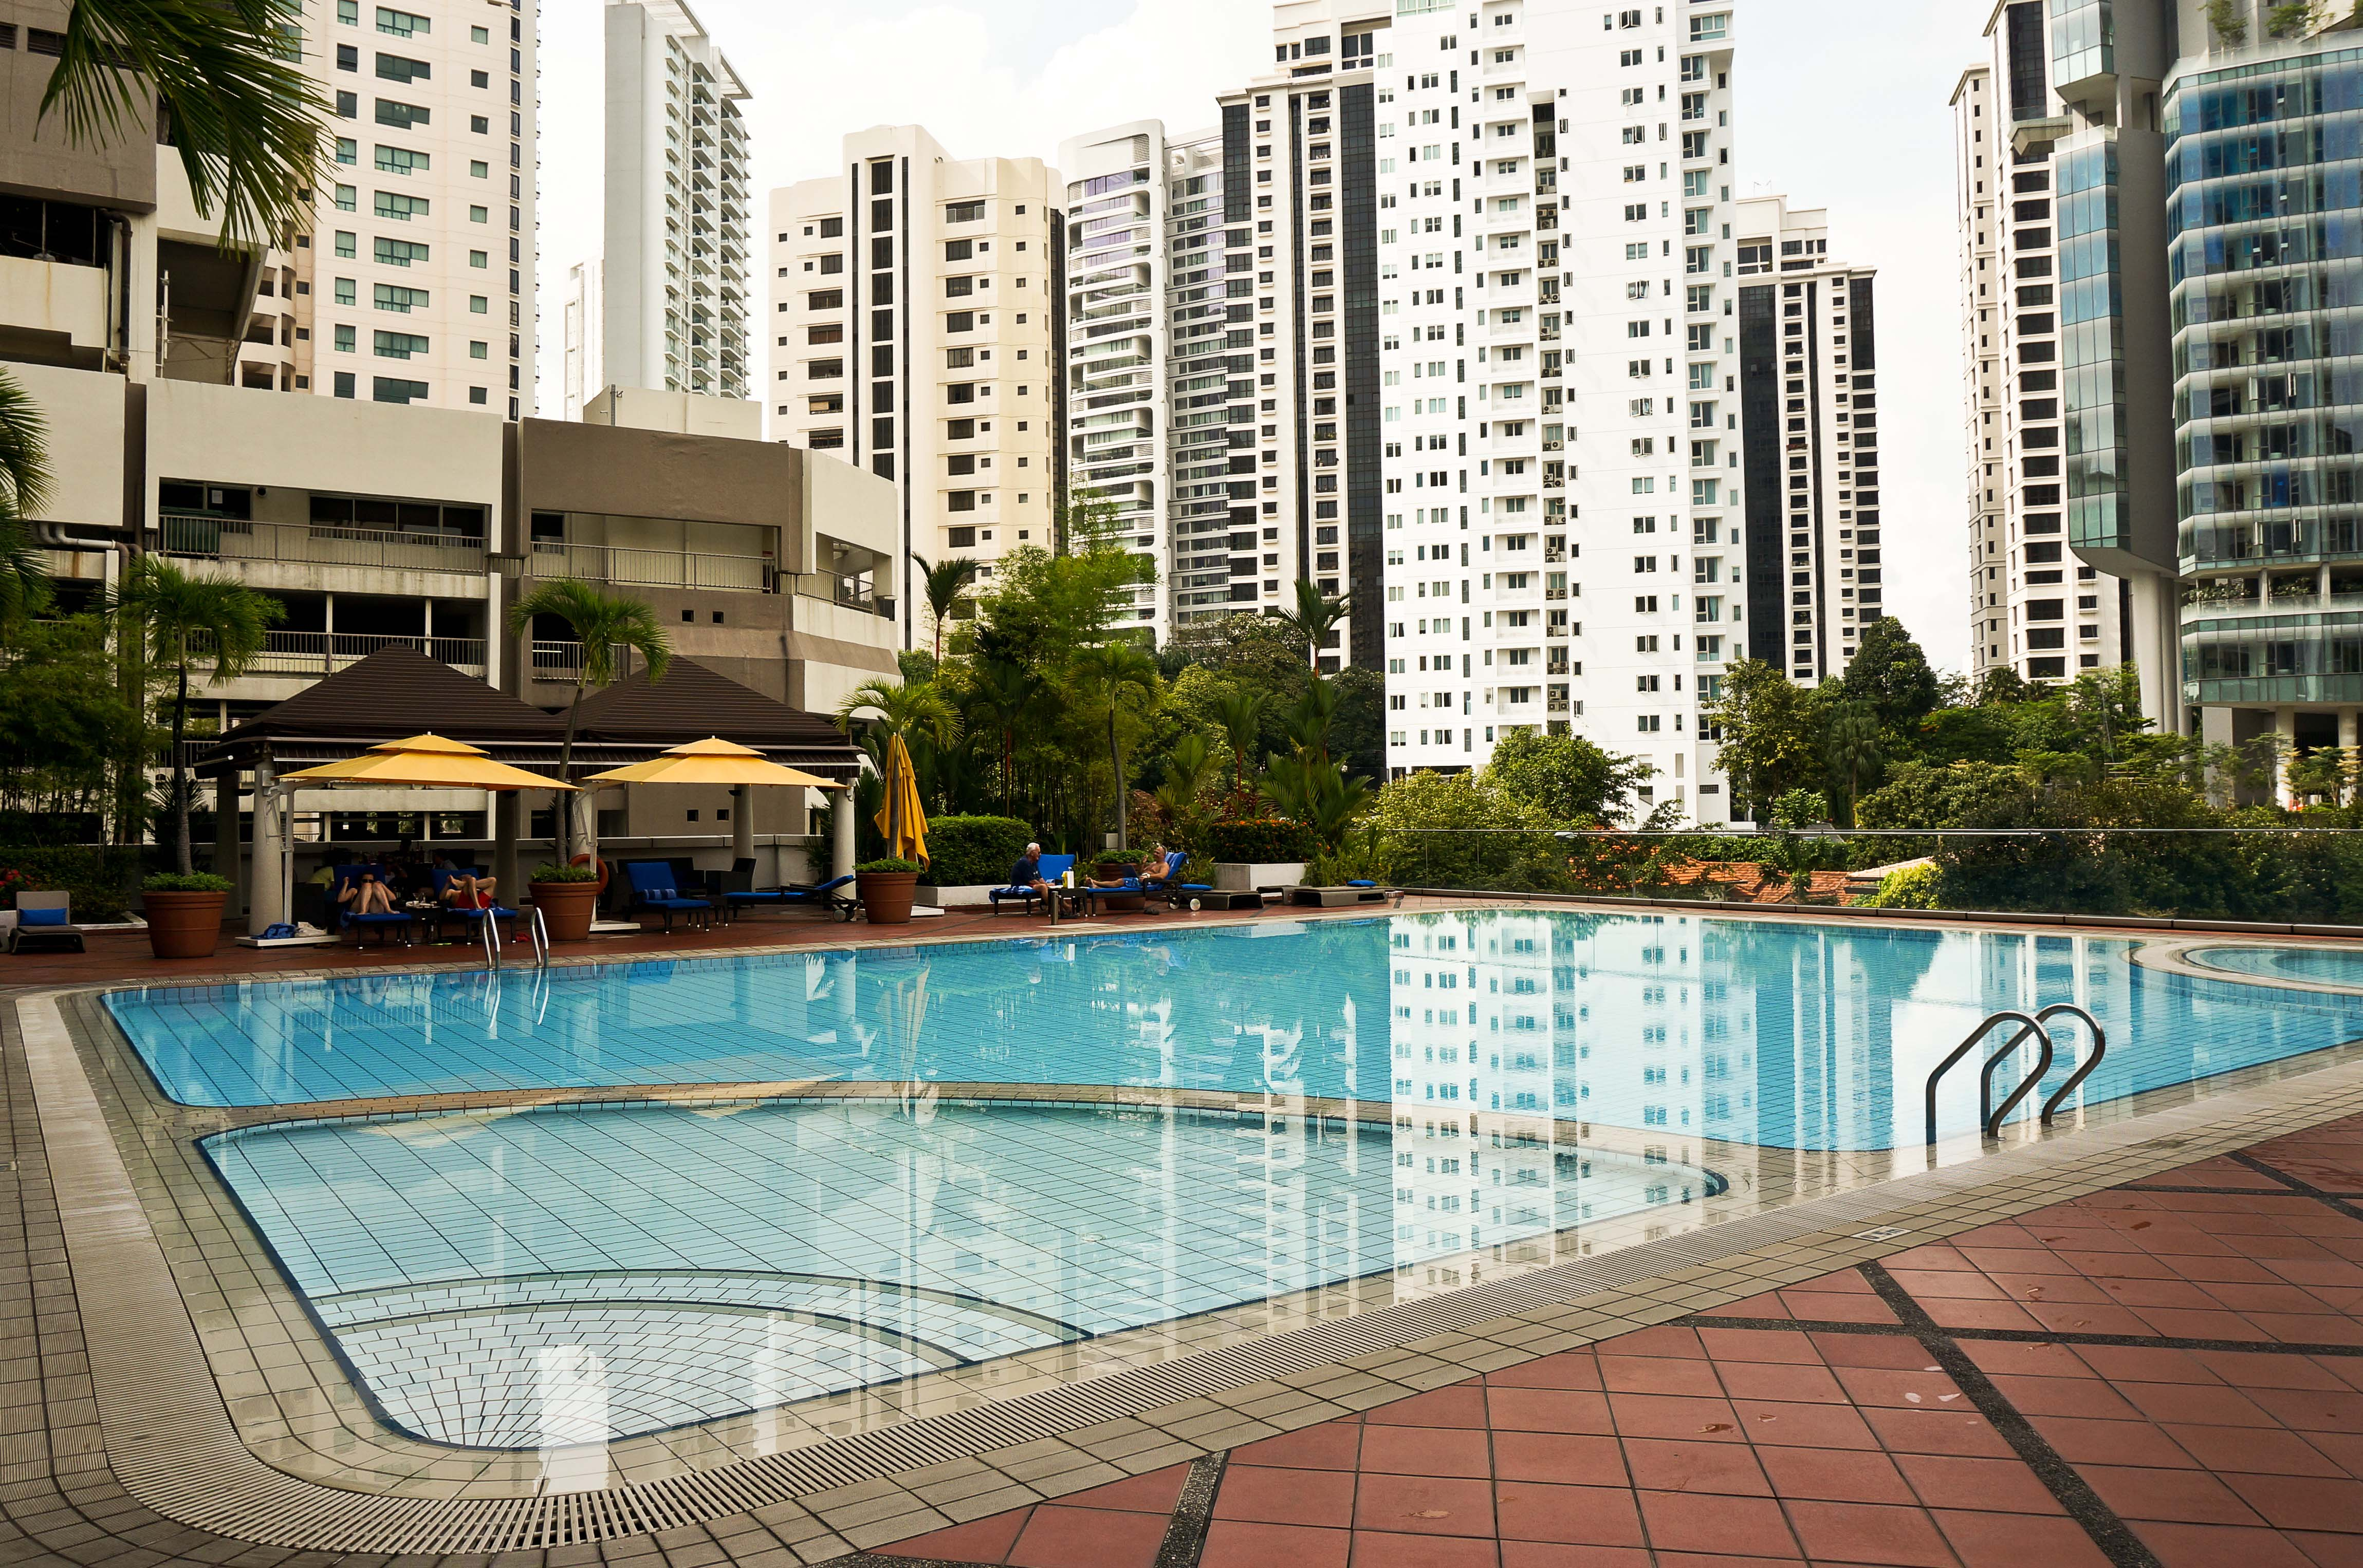 Our Pan Pacific Orchard Singapore Staycation We Swam In Singapore 39 S First Mineral Water